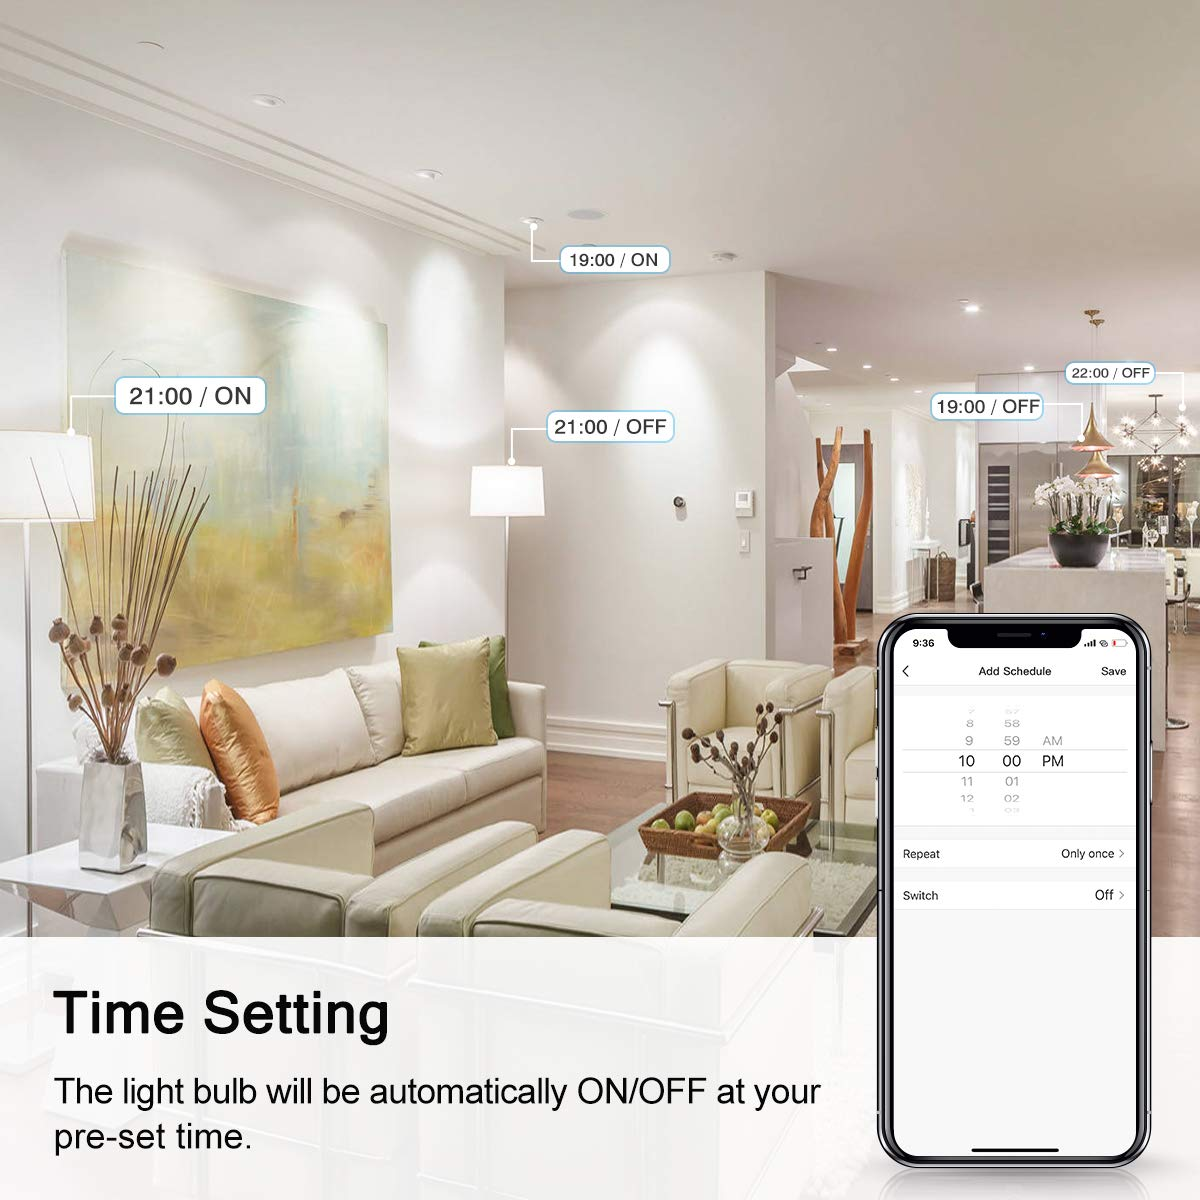 LOHAS Smart LED Candelabra Bulb E12 Base, Smart Daylight 5000K Single Color WiFi LED Light Bulb, 50w Equivalent Dimmable with APP, Compatible with Alexa Google Assistant for Ceiling Fan Lights, 4 Pack by L LOHAS LED (Image #3)